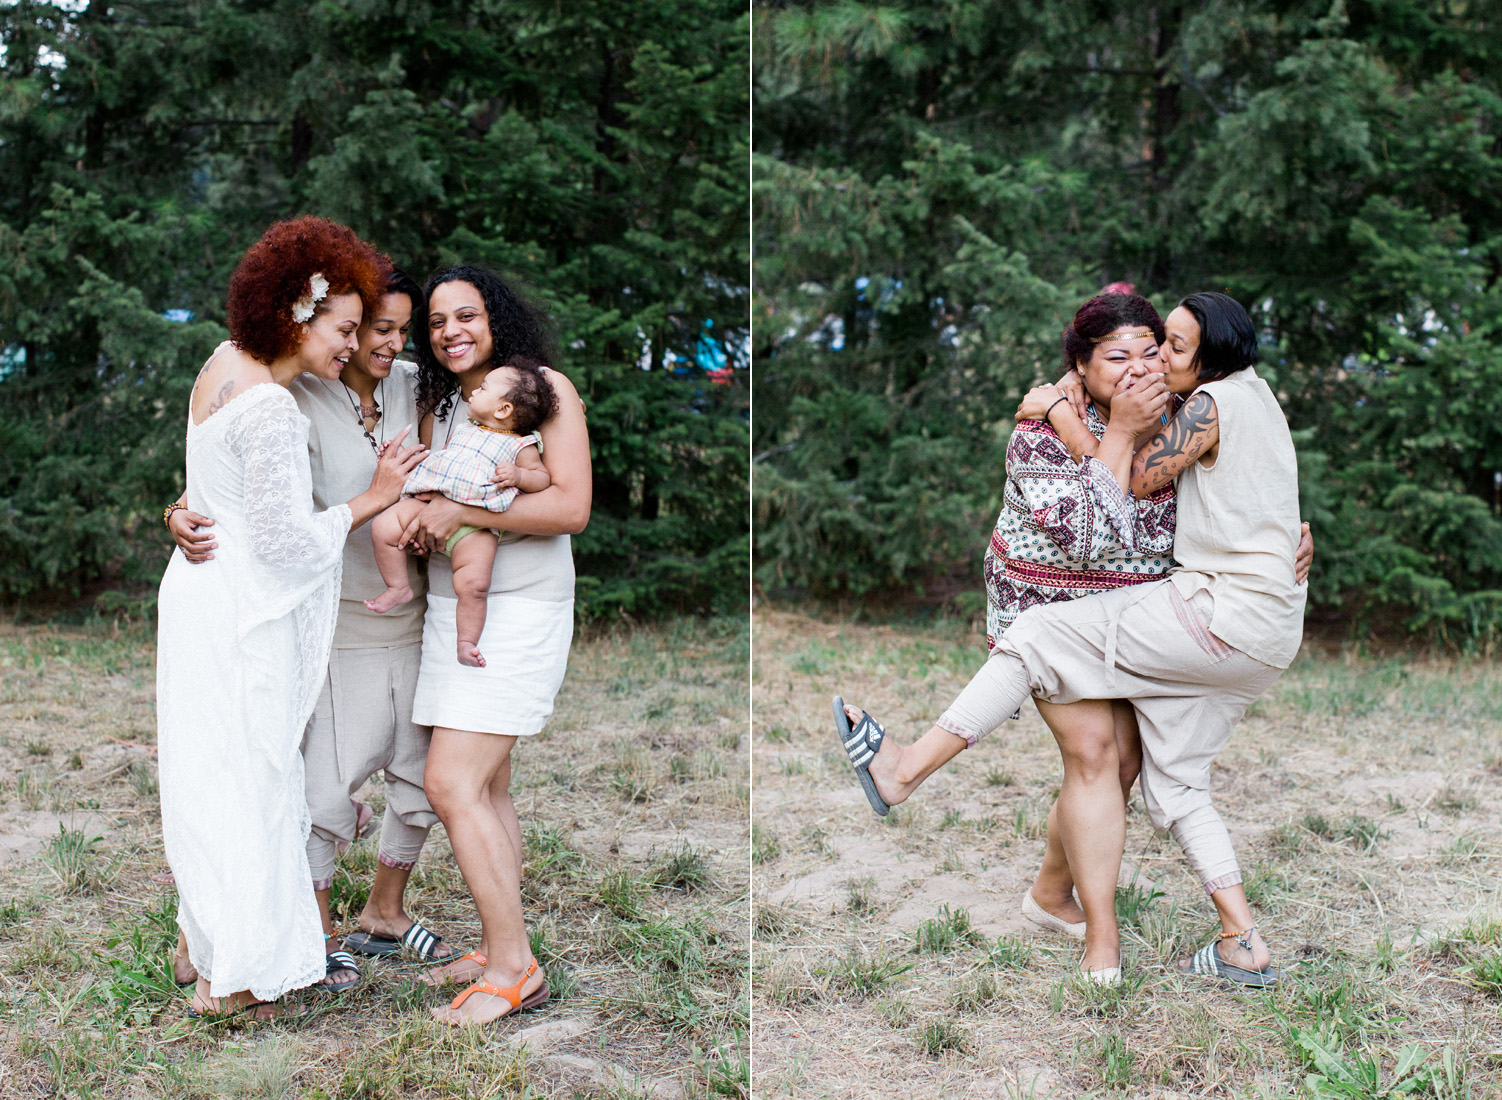 leavenworth campground wedding candid portrait photography.jpg